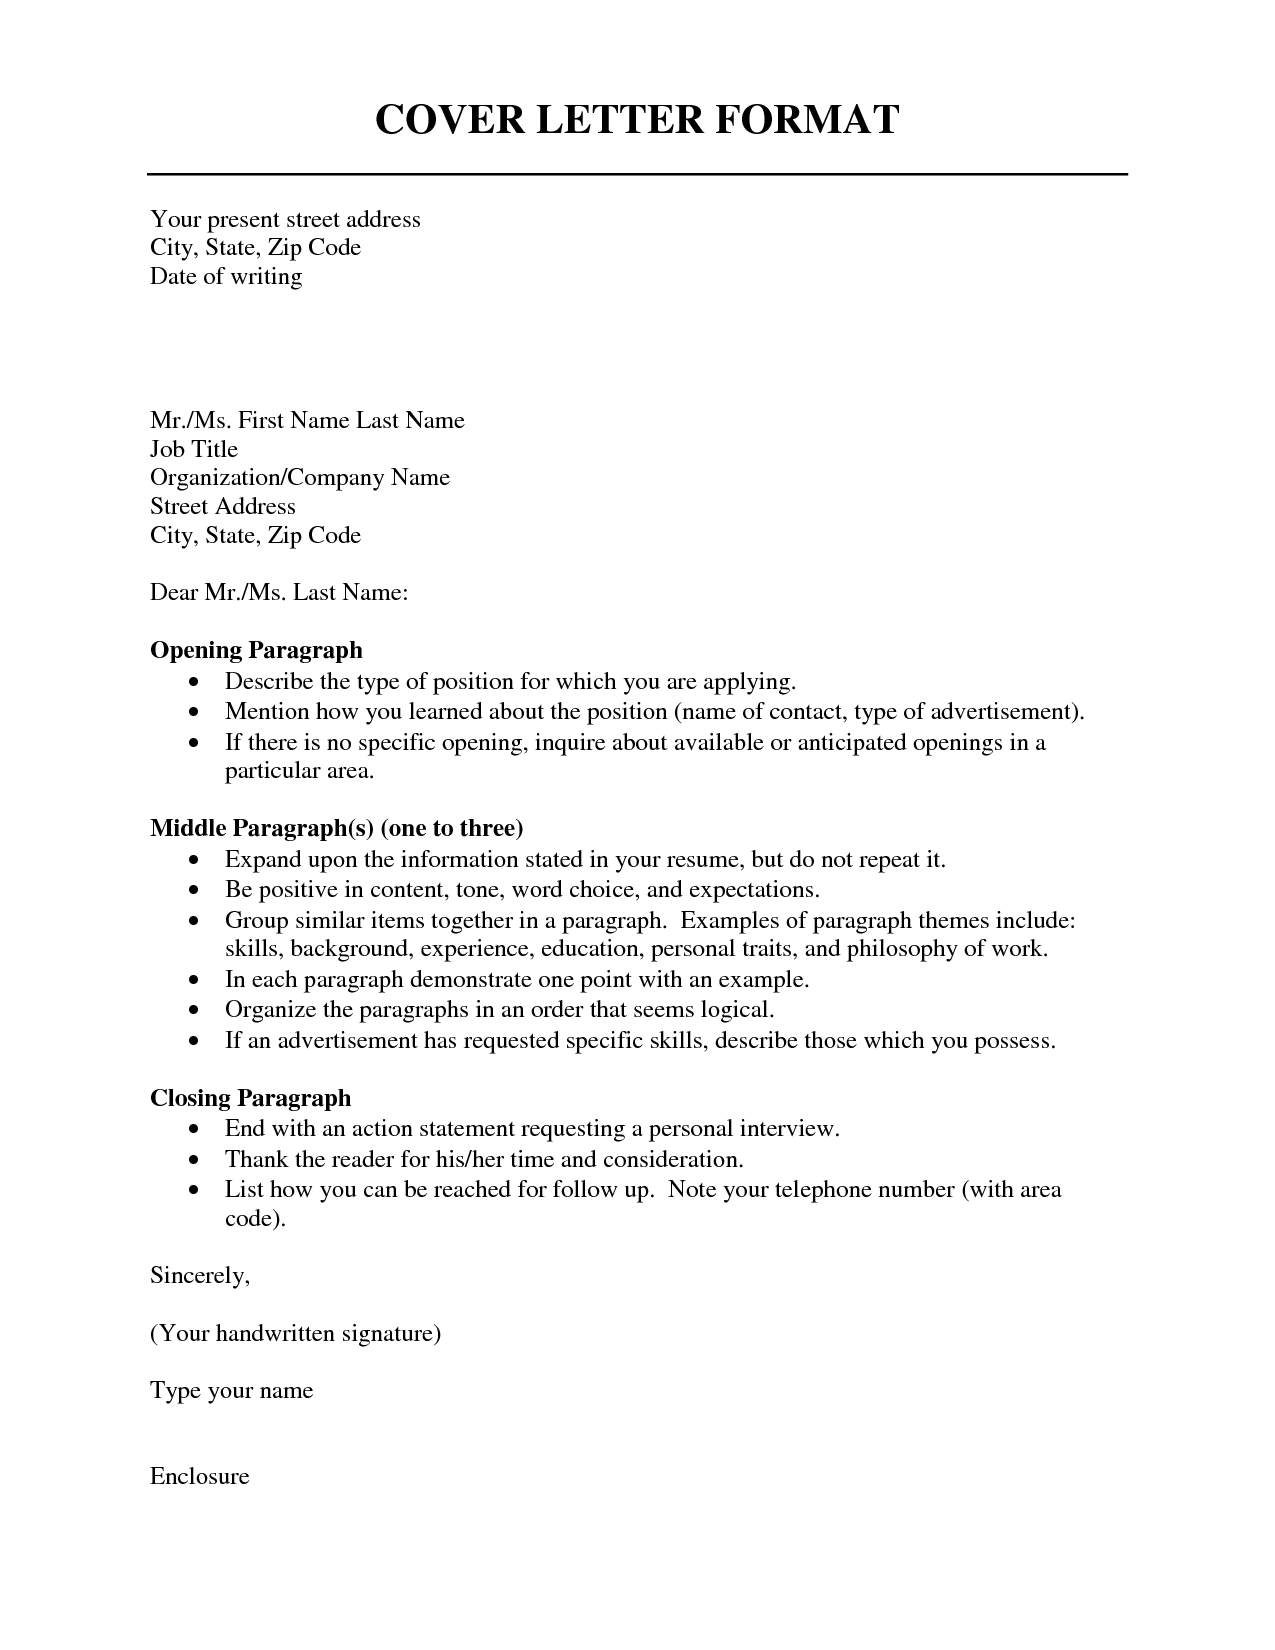 Superior Fieldstation.co Intended Format Of A Cover Letter